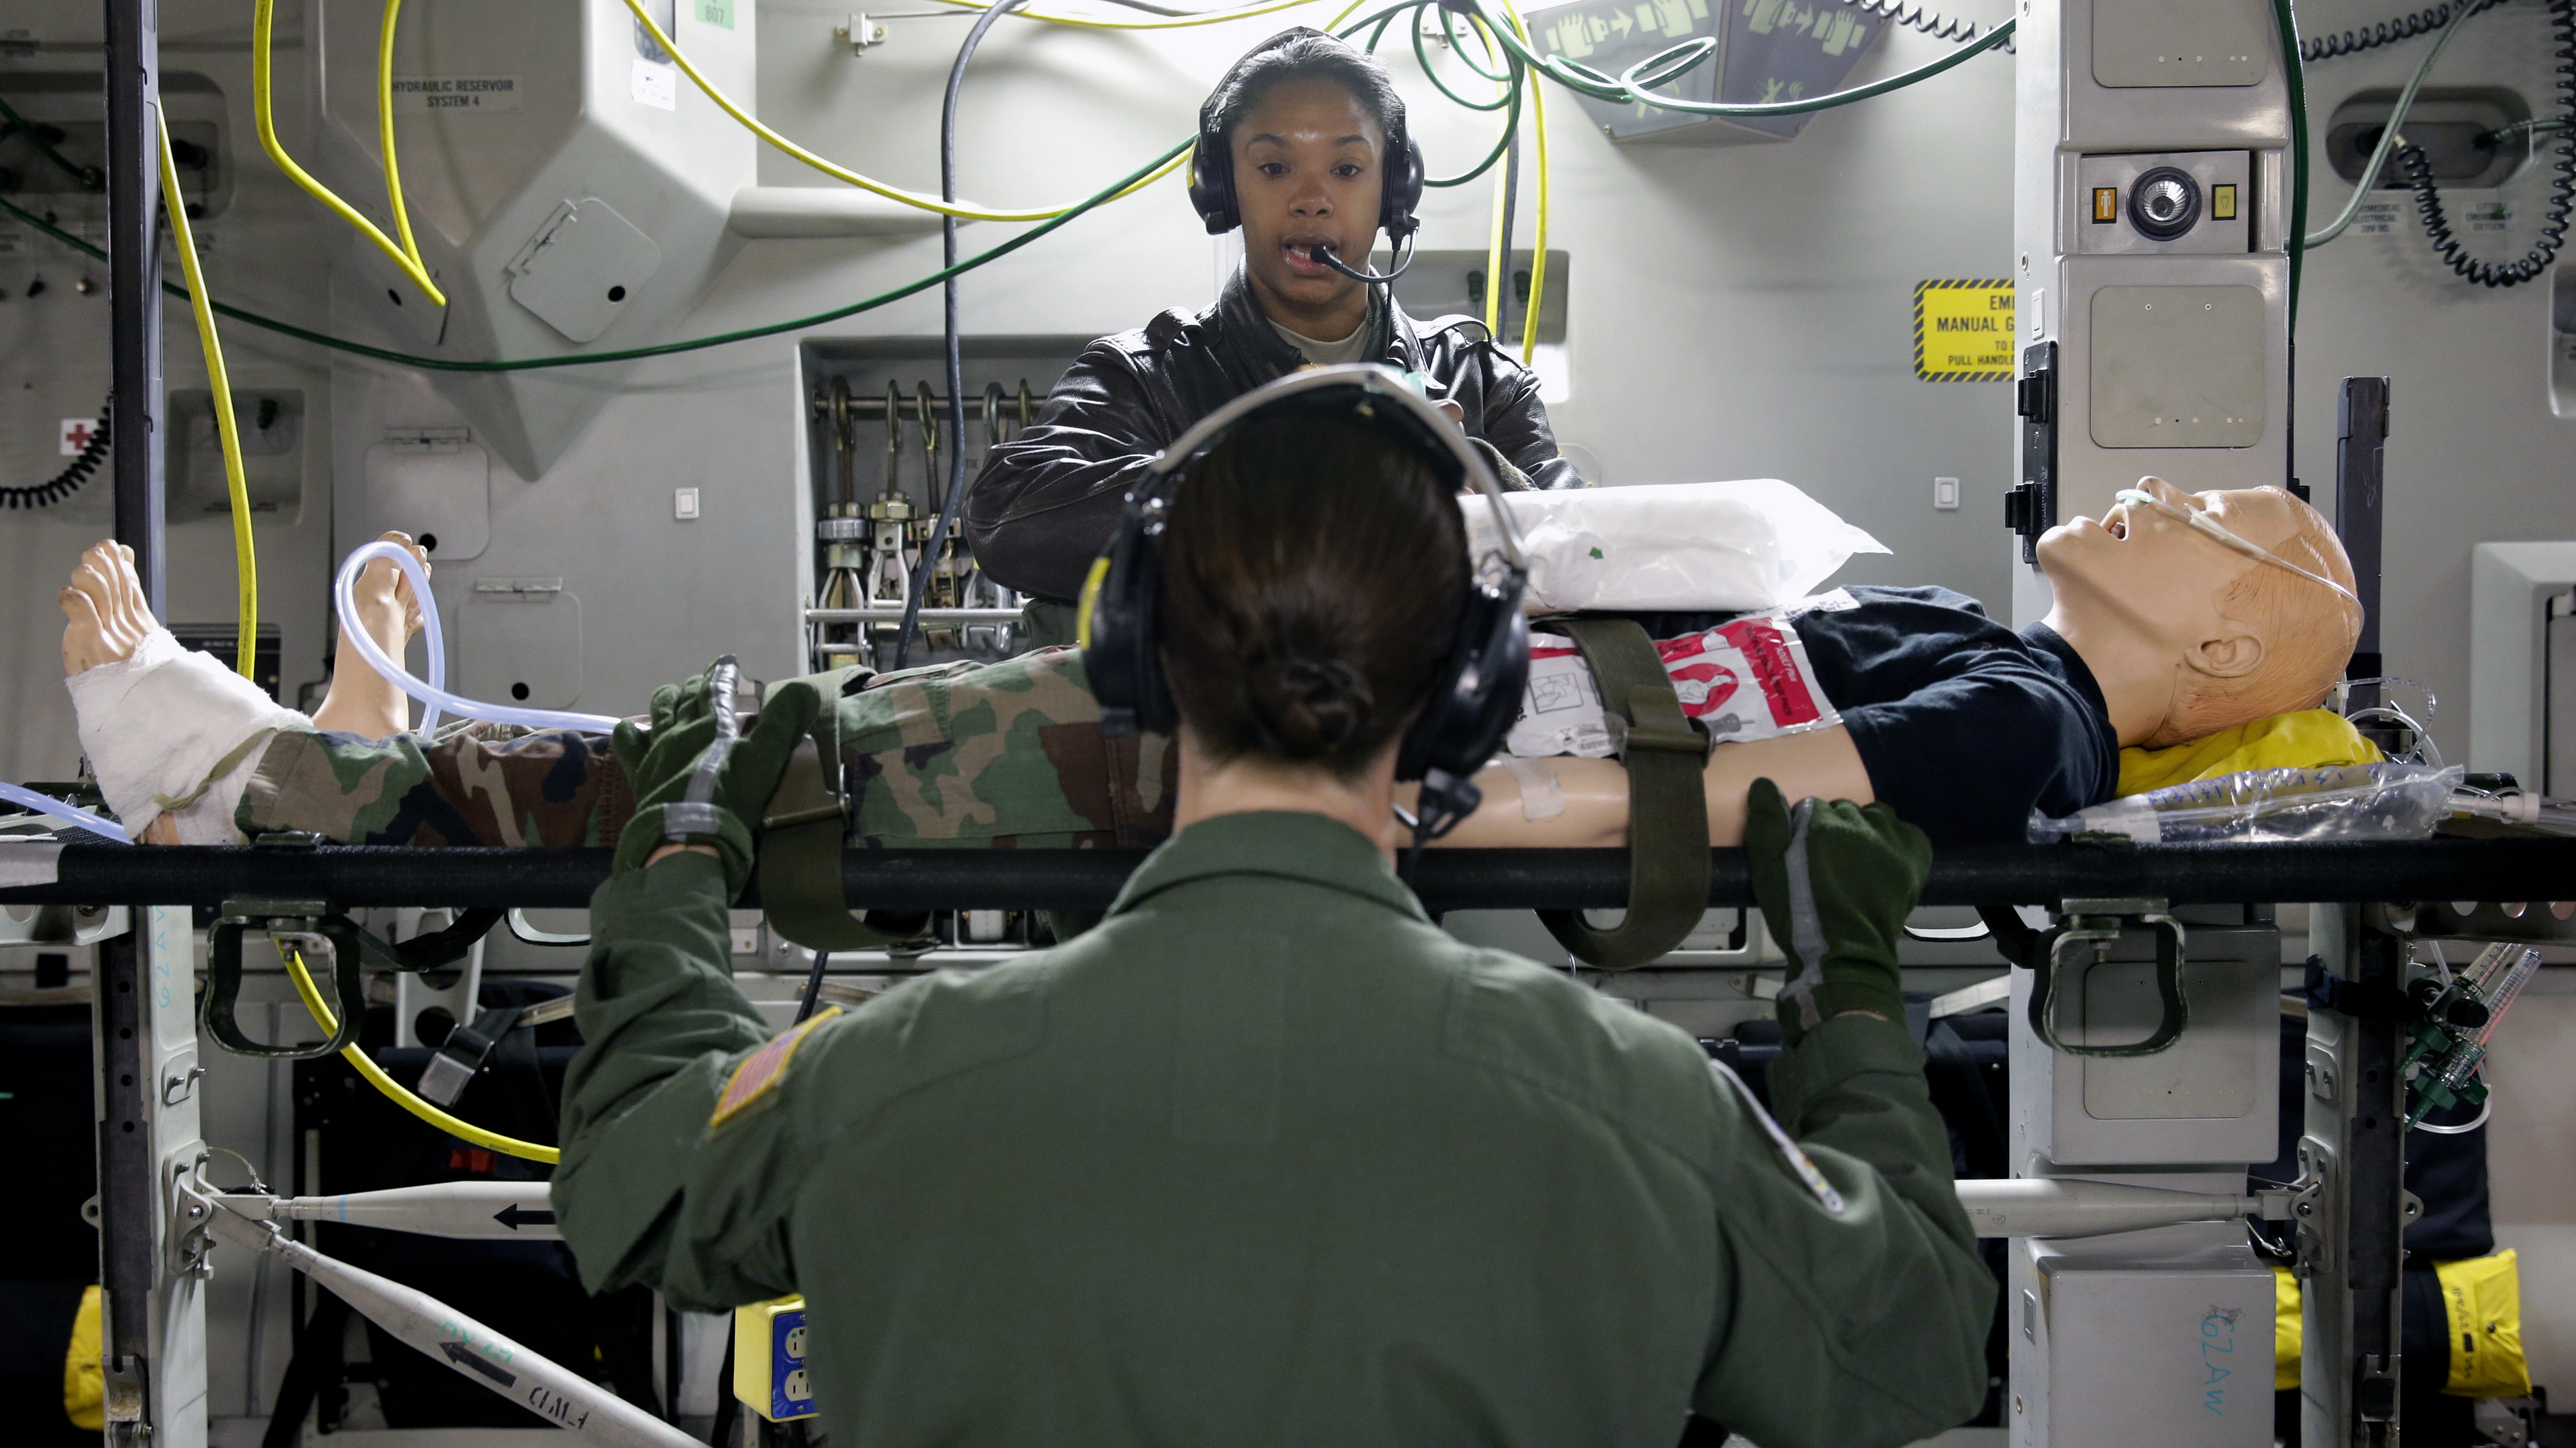 Master Sgt. Natalia Stockhausen, top, a flight medic with the Air Force Reserve 446th Aeromedical Evacuation Squadron, gives instructions as she works on a mannequin representing a medical patient during a training fight on a C-17 cargo plane out of Joint Base Lewis-McChord, Wash., Wednesday, Jan. 21, 2015. Most medical evacuations of wounded military members are performed by Air Force Reserve and Air National Guard units.